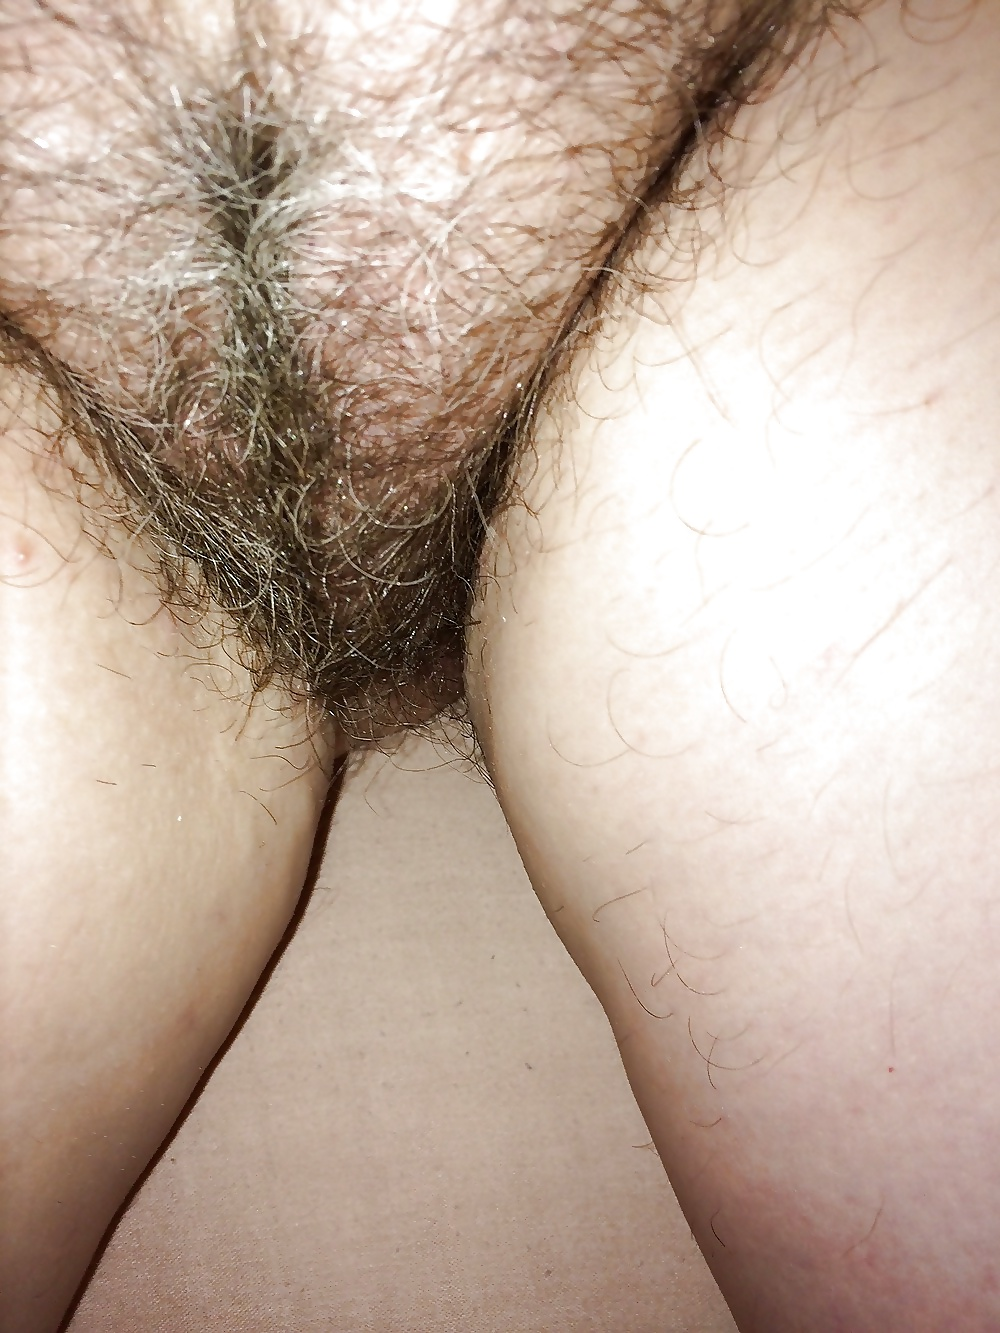 Xhamster hairy wives